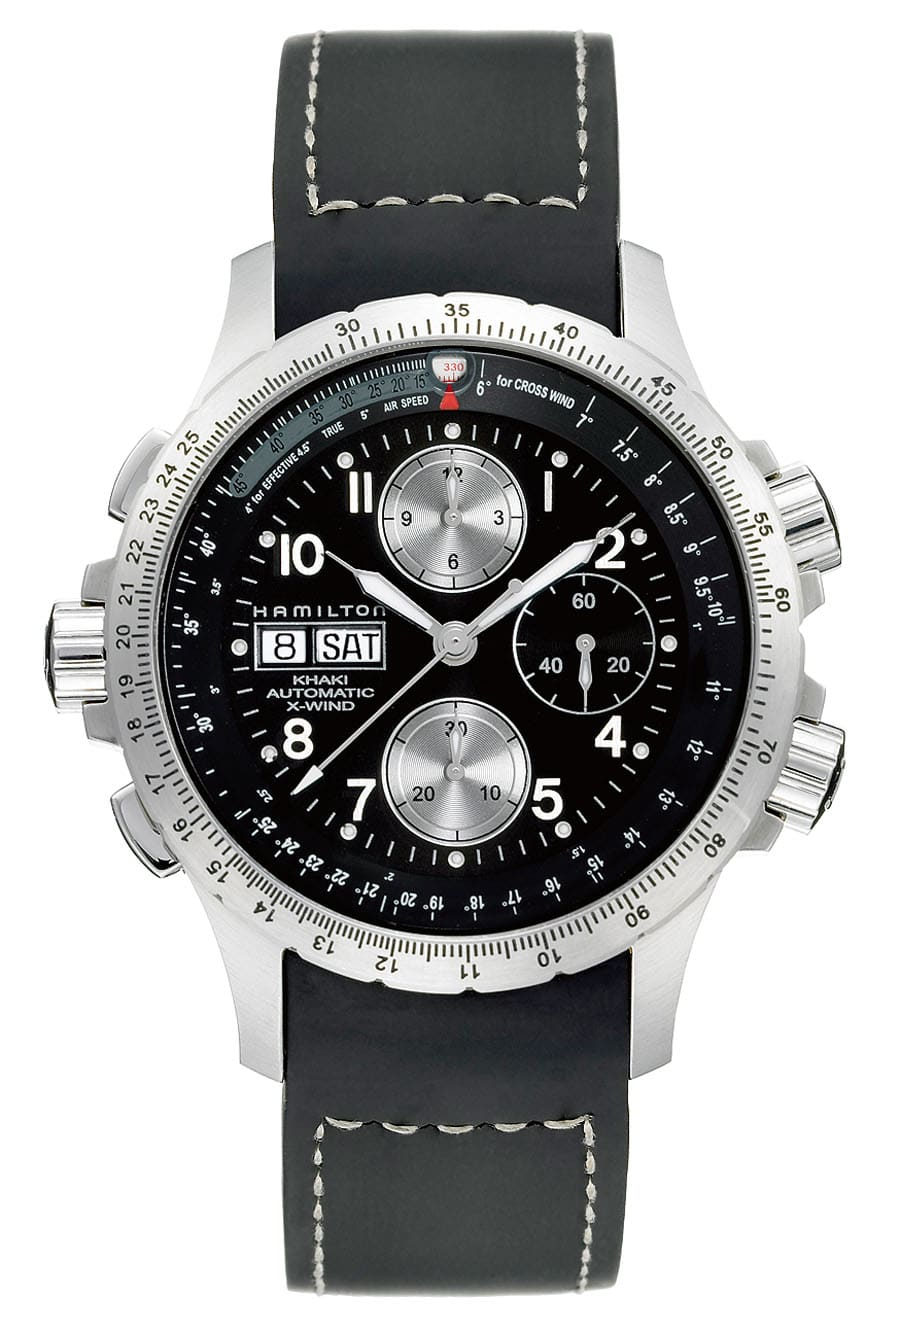 Uhren-Ikonen und ihre Alternativen: Hamilton Khaki Aviation X-Wind Auto Chrono